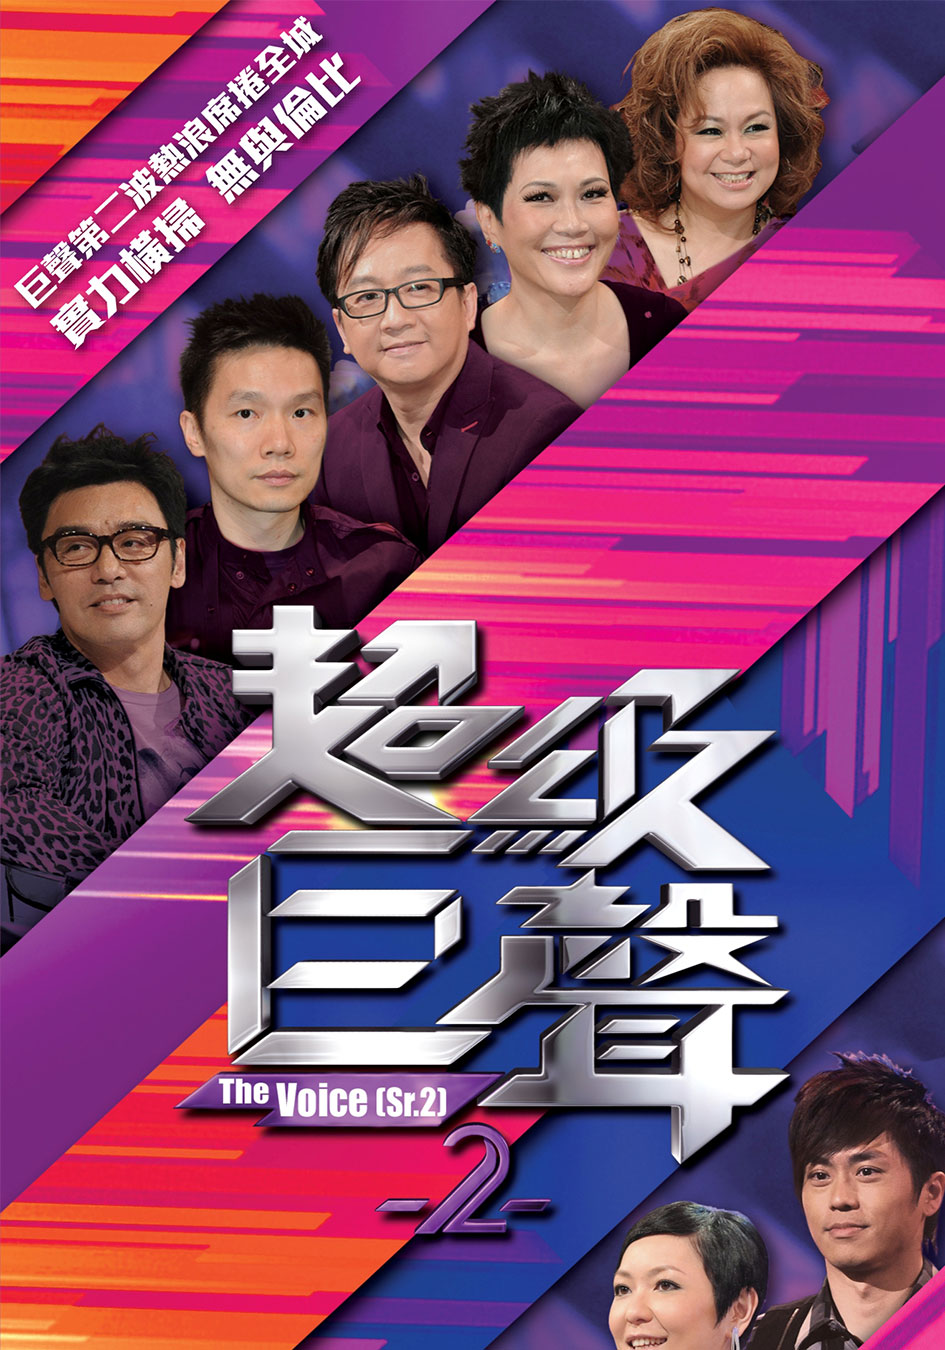 超級巨聲2-The Voice Sr. 2